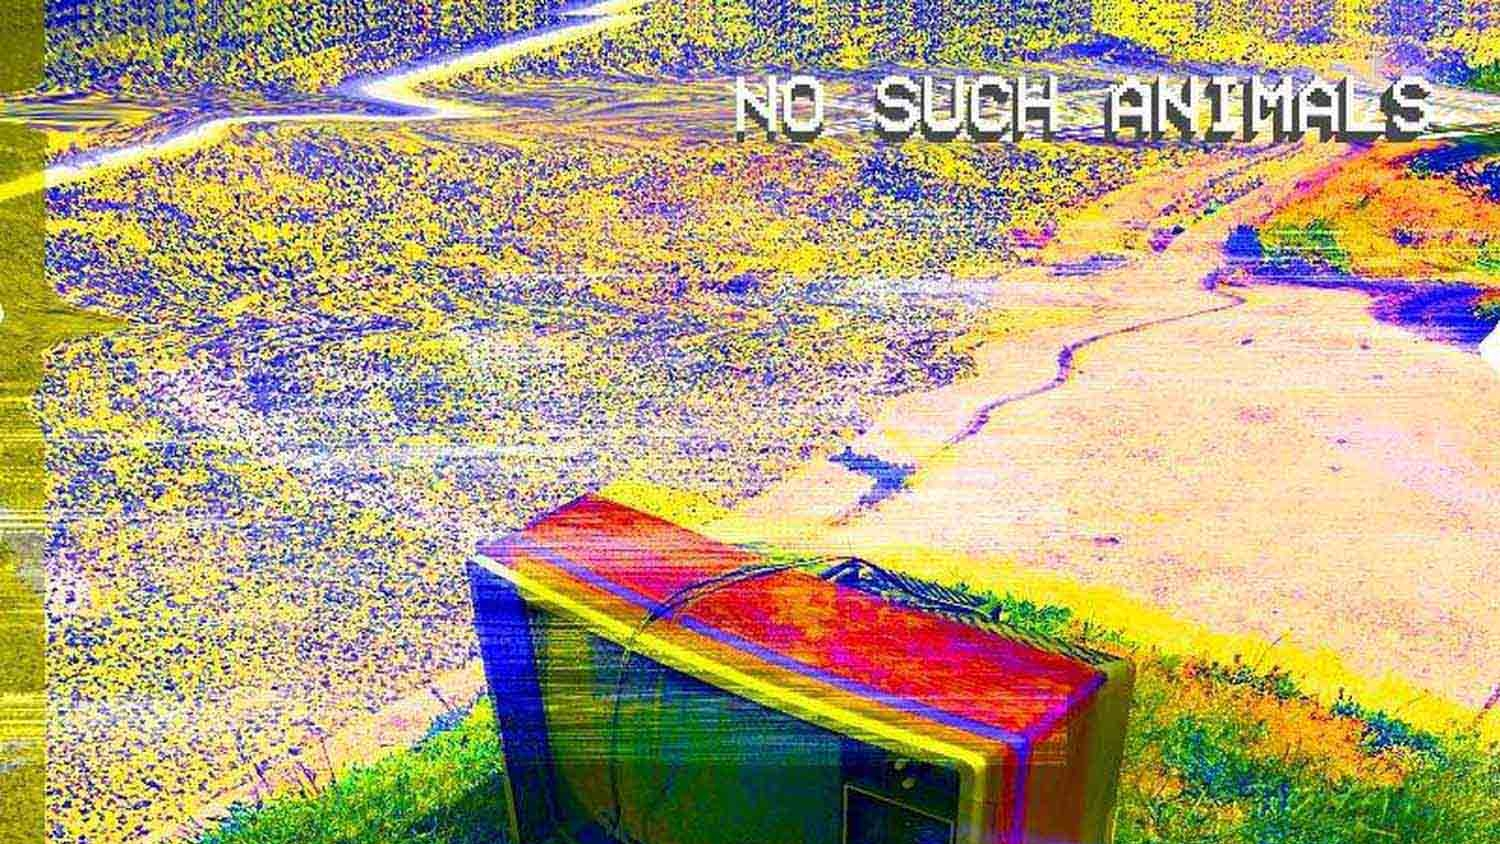 NO SUCH ANIMALS - CREATE TV (ALBUM REVIEW)   Indie, Alternative, Rock, Experimental   Lacey, NJ   Posted December 10, 2017